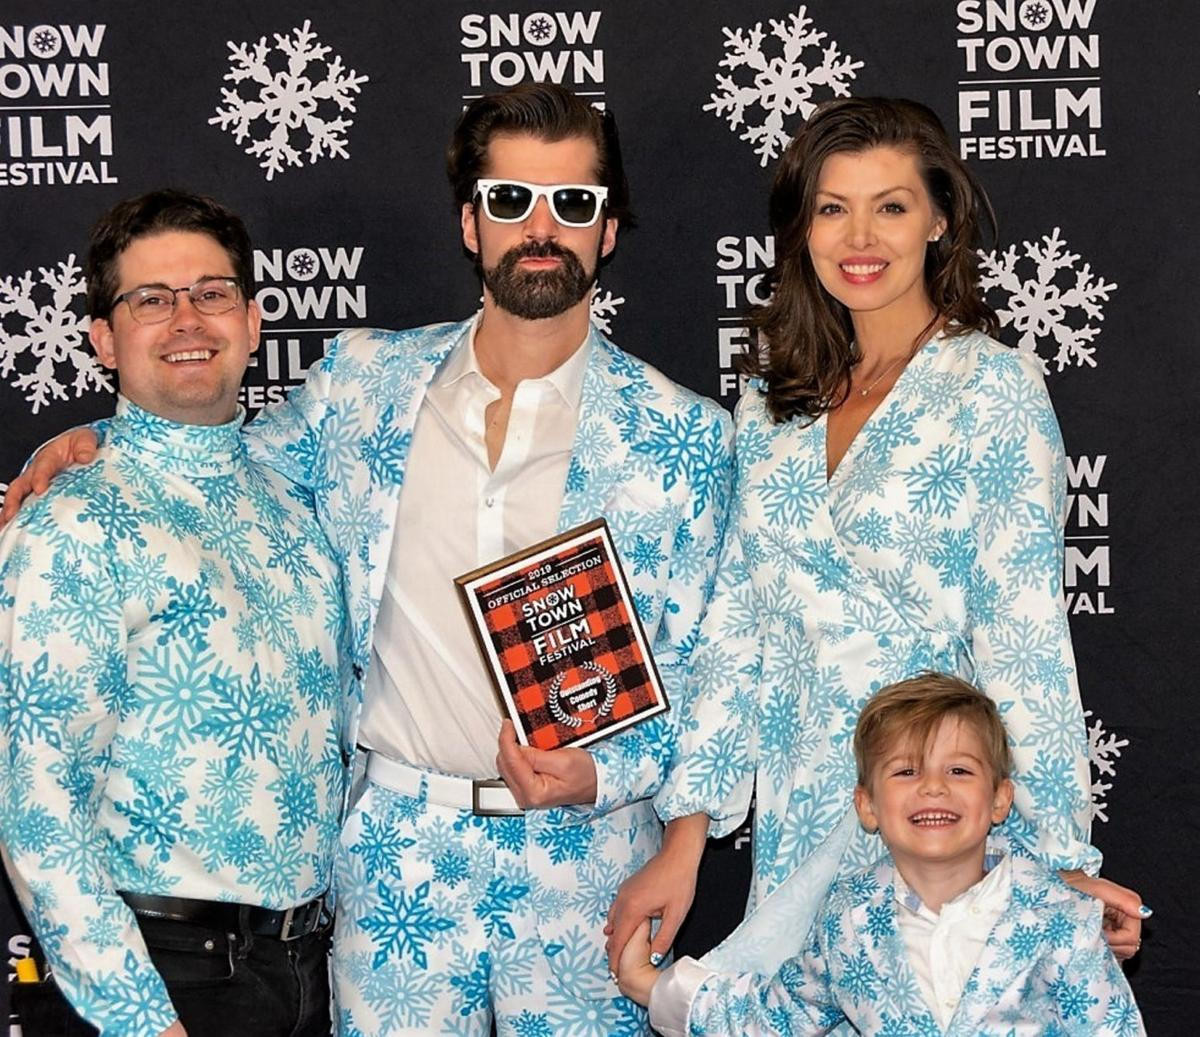 Well-suited NYC-based filmmaking team looks forward to Watertown event SNOWTOWN RETURN